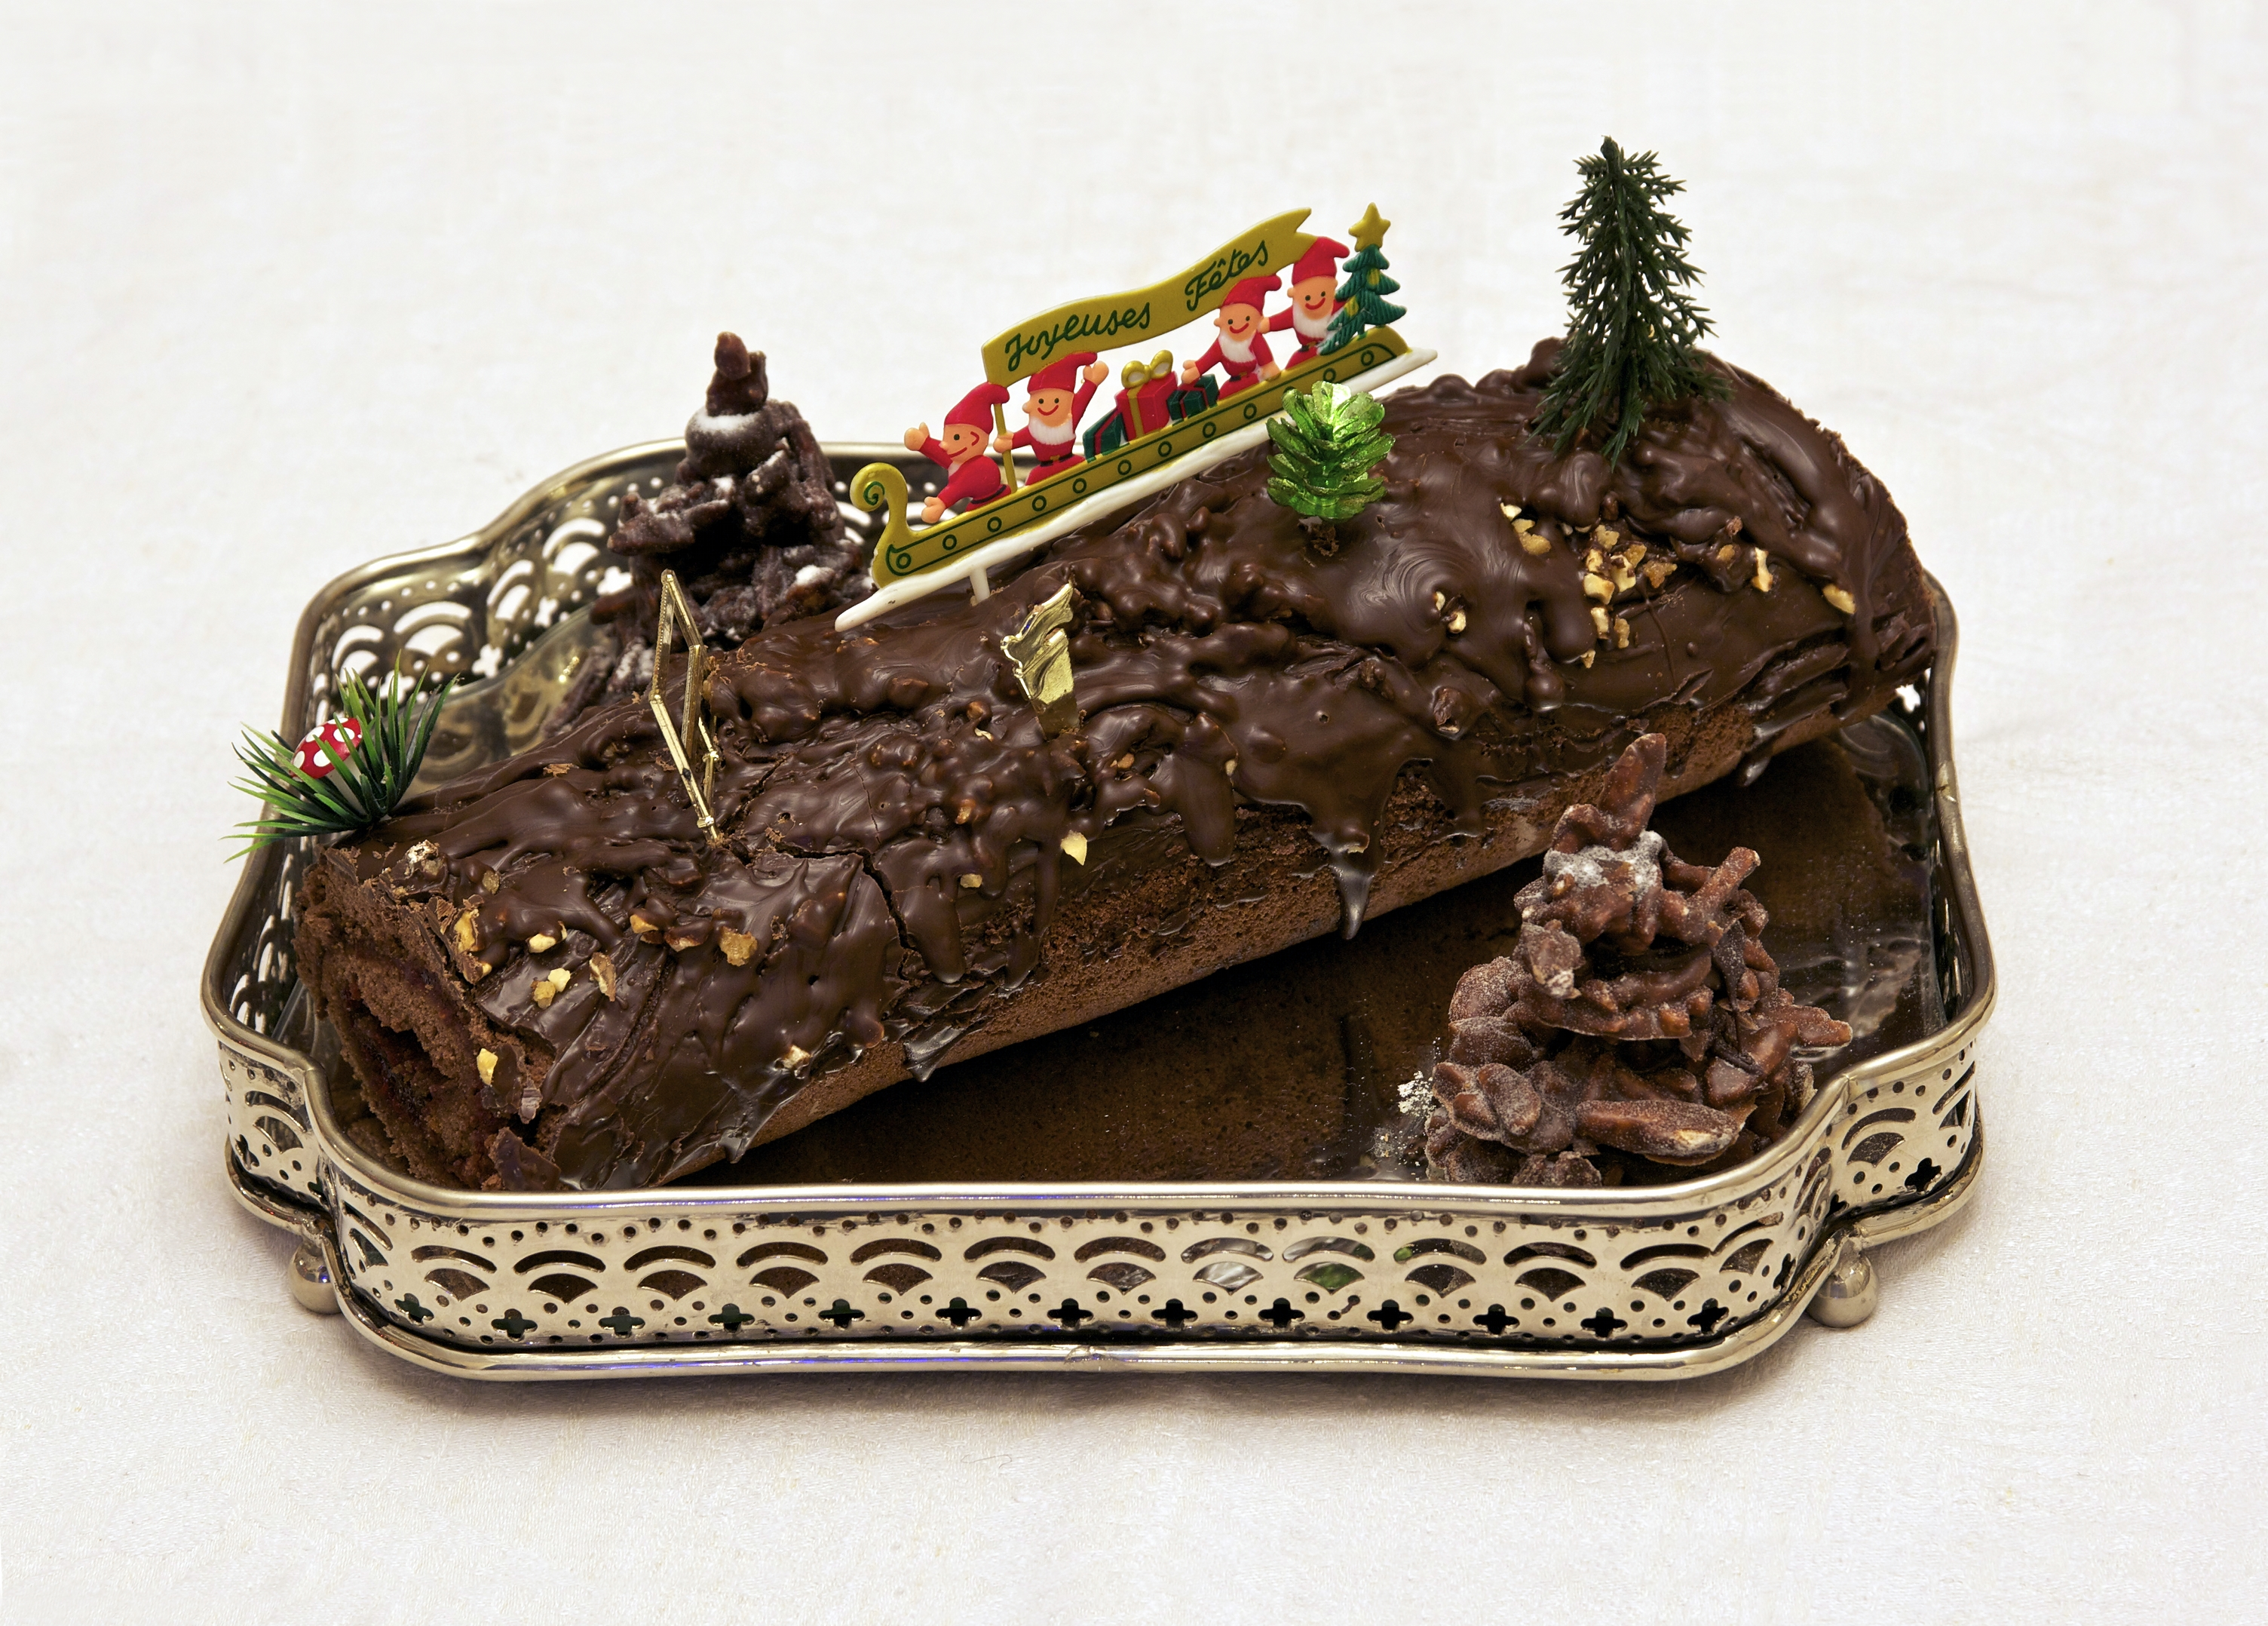 Blog Image De Noel.Yule Log Cake Wikipedia